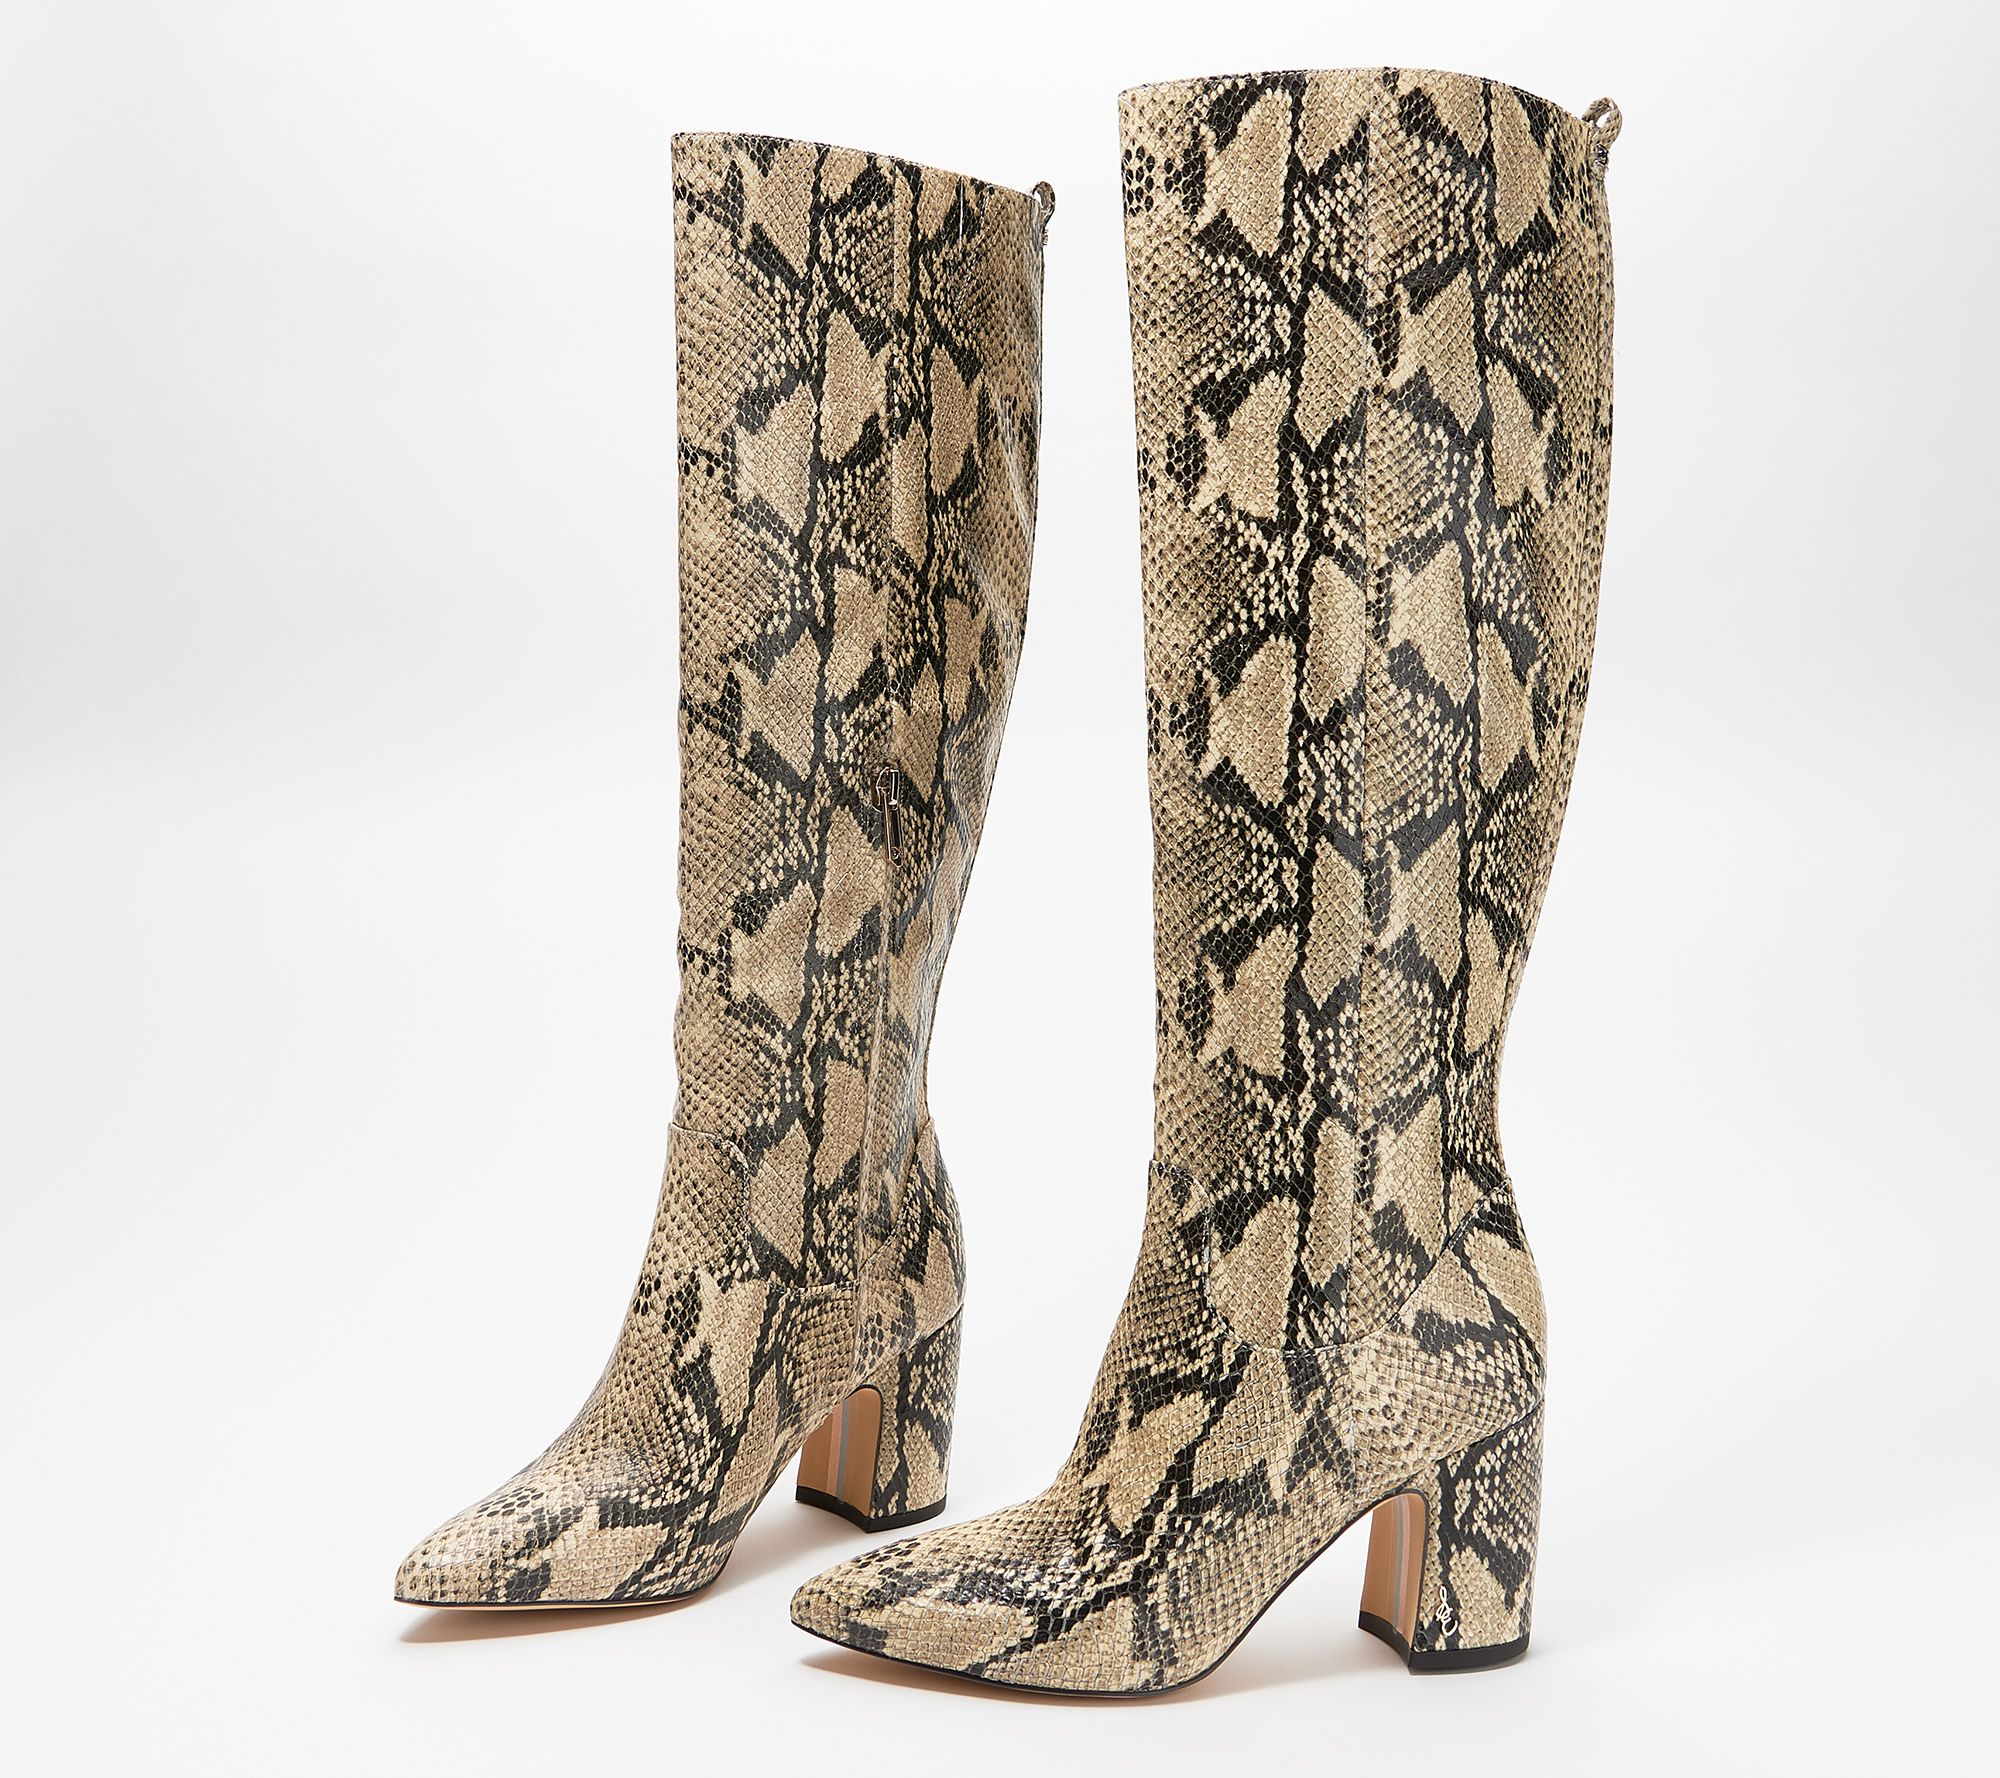 casual shoes retail prices differently Sam Edelman Snake-Print Tall-Shaft Boots - Hai - Page 1 — QVC.com